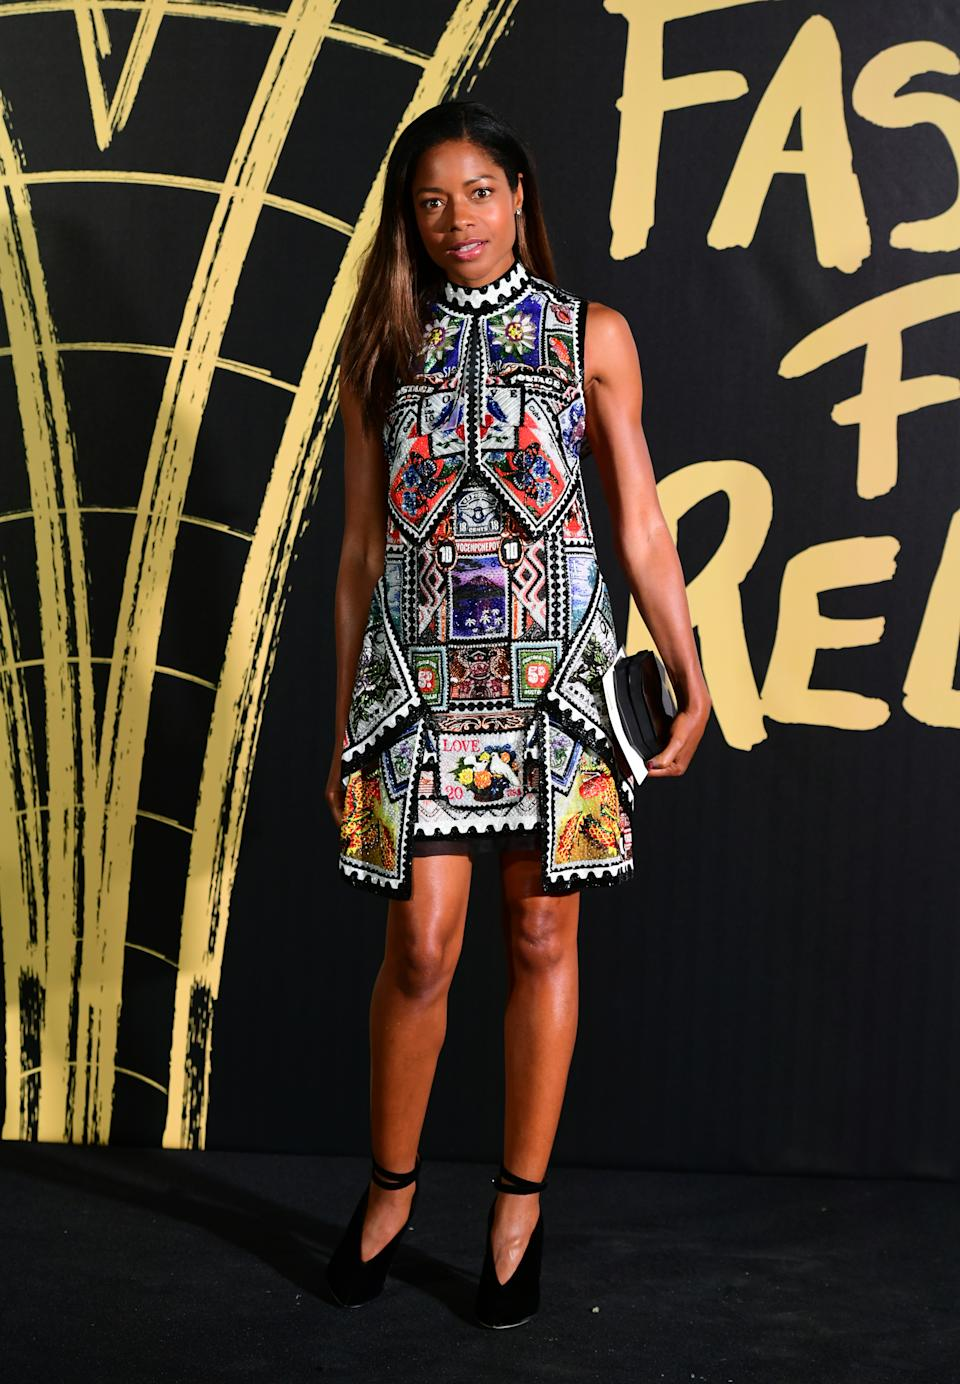 Naomie Harris arriving on the red carpet for Naomi Campbell's Fashion For Relief Gala during London Fashion Week [Photo: PA]